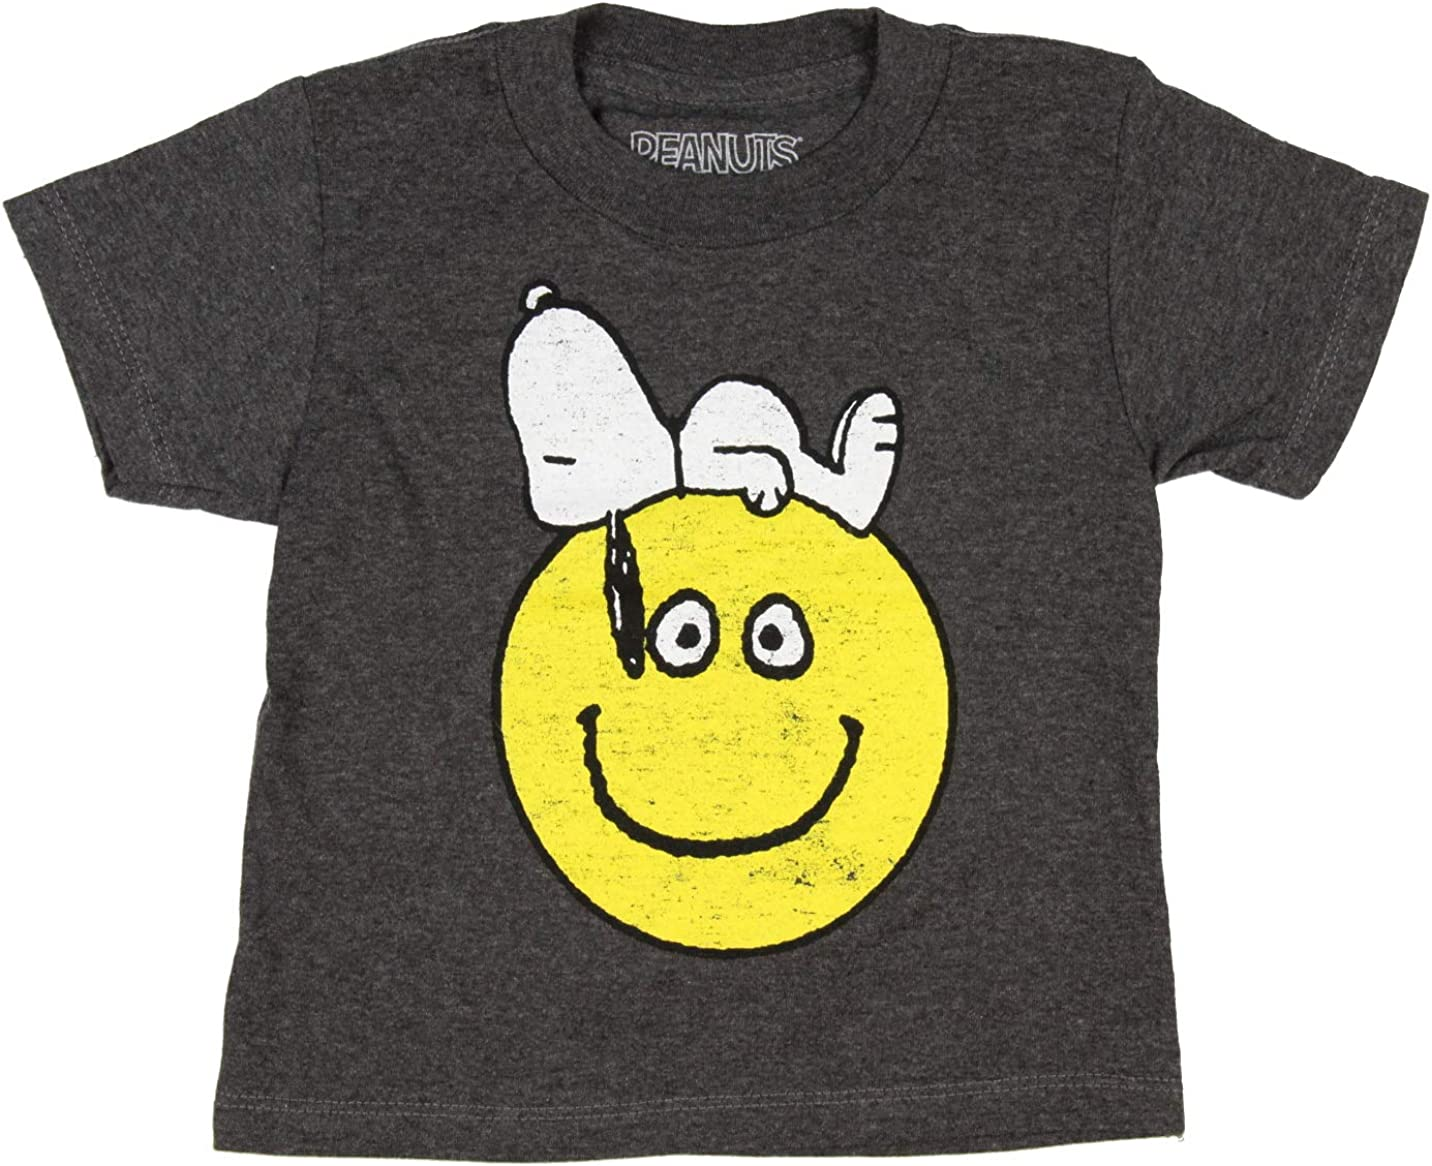 Peanuts Boys' Snoopy Laying On A Smiling Face Distressed Graphic T-Shirt